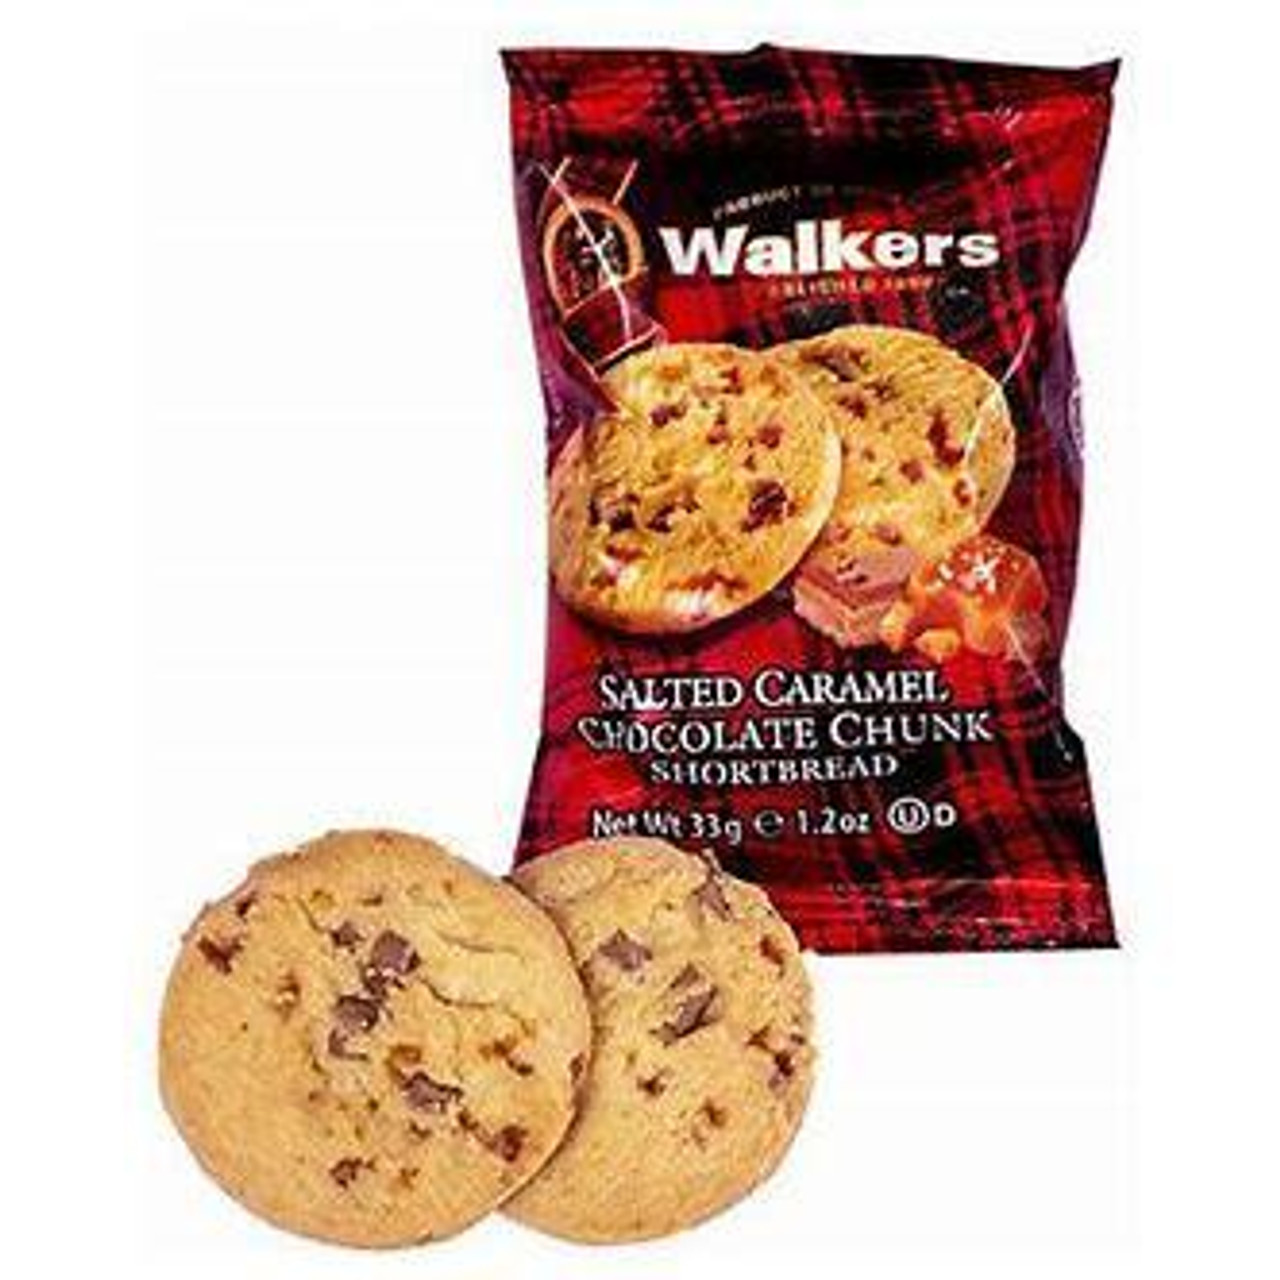 Walkers Shortbread 2 Pack Salted Caramel & Chocolate Chunk Shortbread